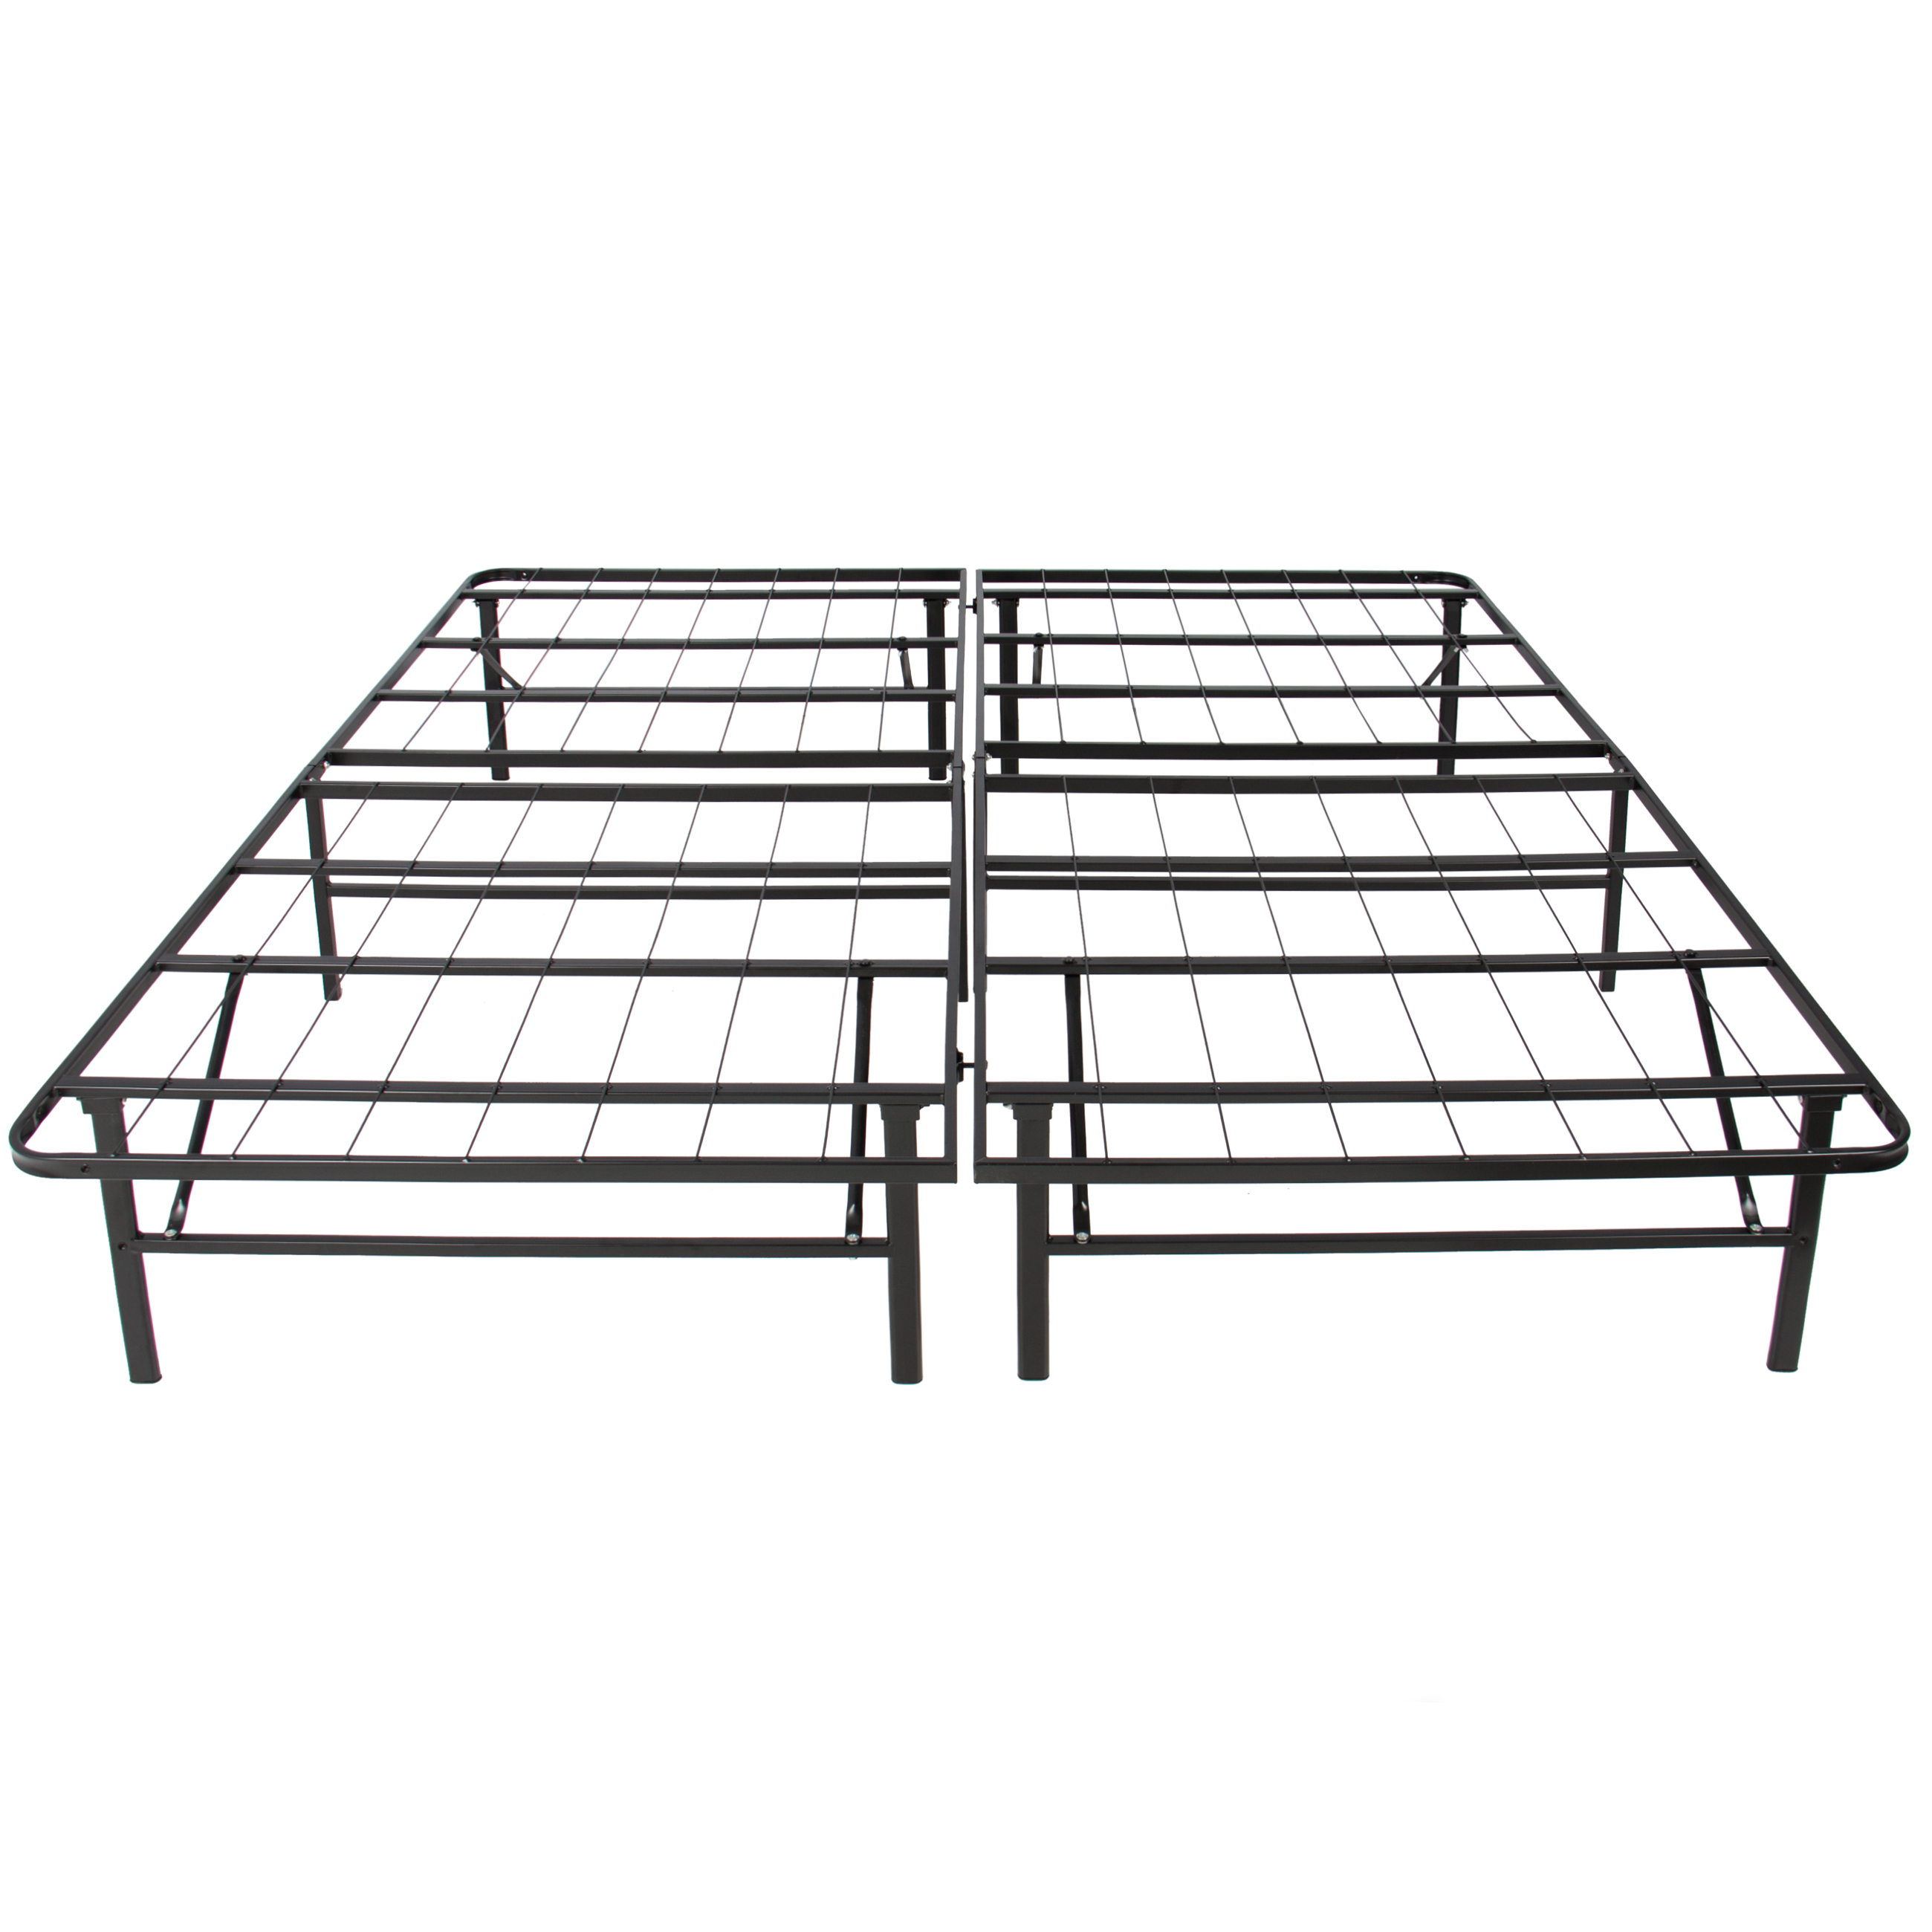 platform metal bed frame foldable no box spring needed mattress foundation queen image 3 of 6 - Box Springs Queen